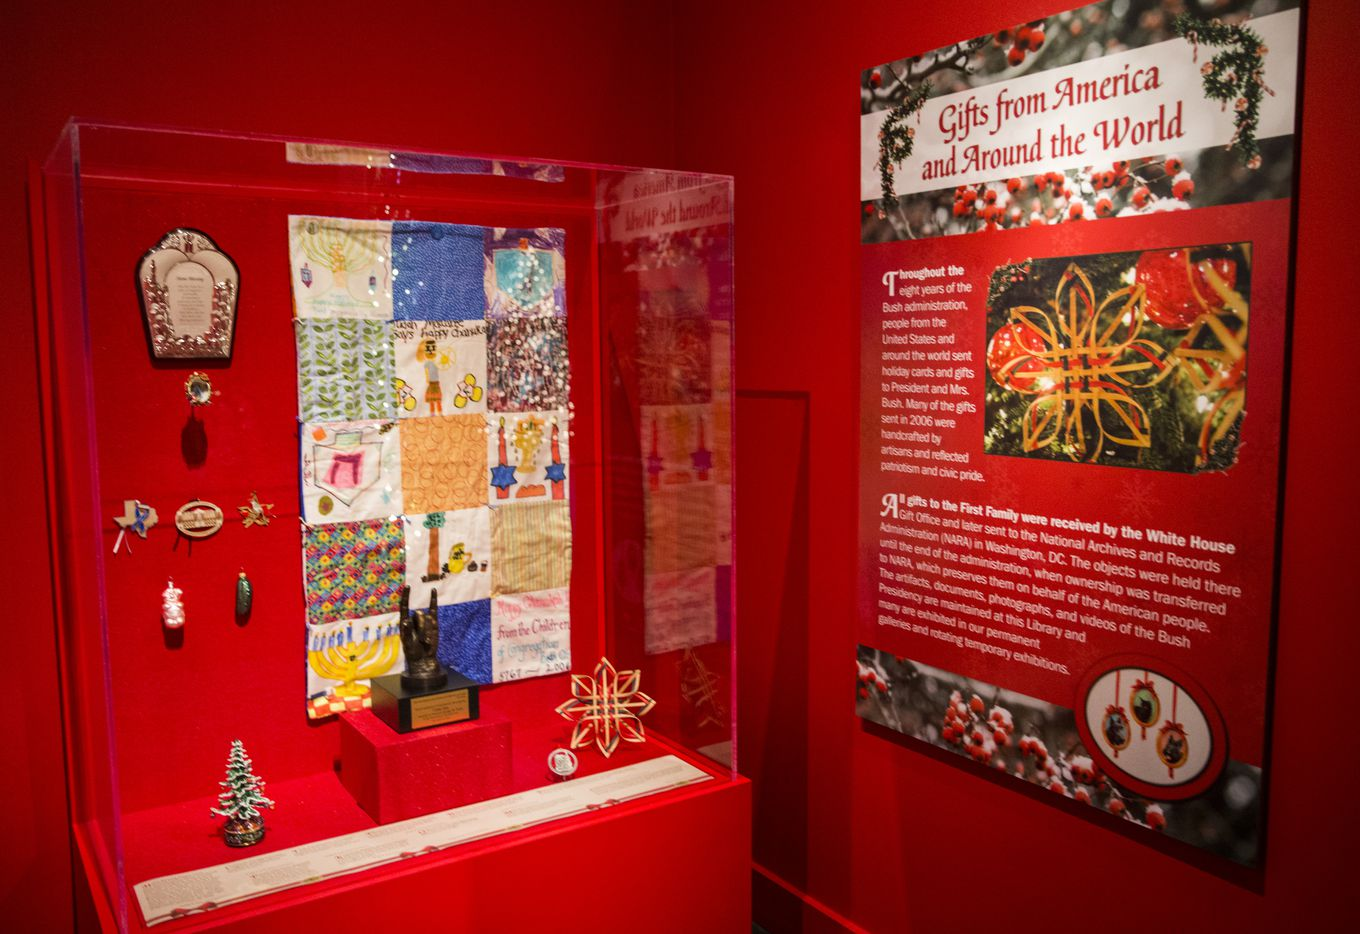 Gifts given to the Bush family in 2006 are displayed at a Christmas exhibit at The George W. Bush Presidential Center and Library on Thursday, November 15, 2018 on the SMU campus in Dallas. This year's theme is Deck the Halls and Welcome All: Christmas at the White House 2006. (Ashley Landis/The Dallas Morning News)